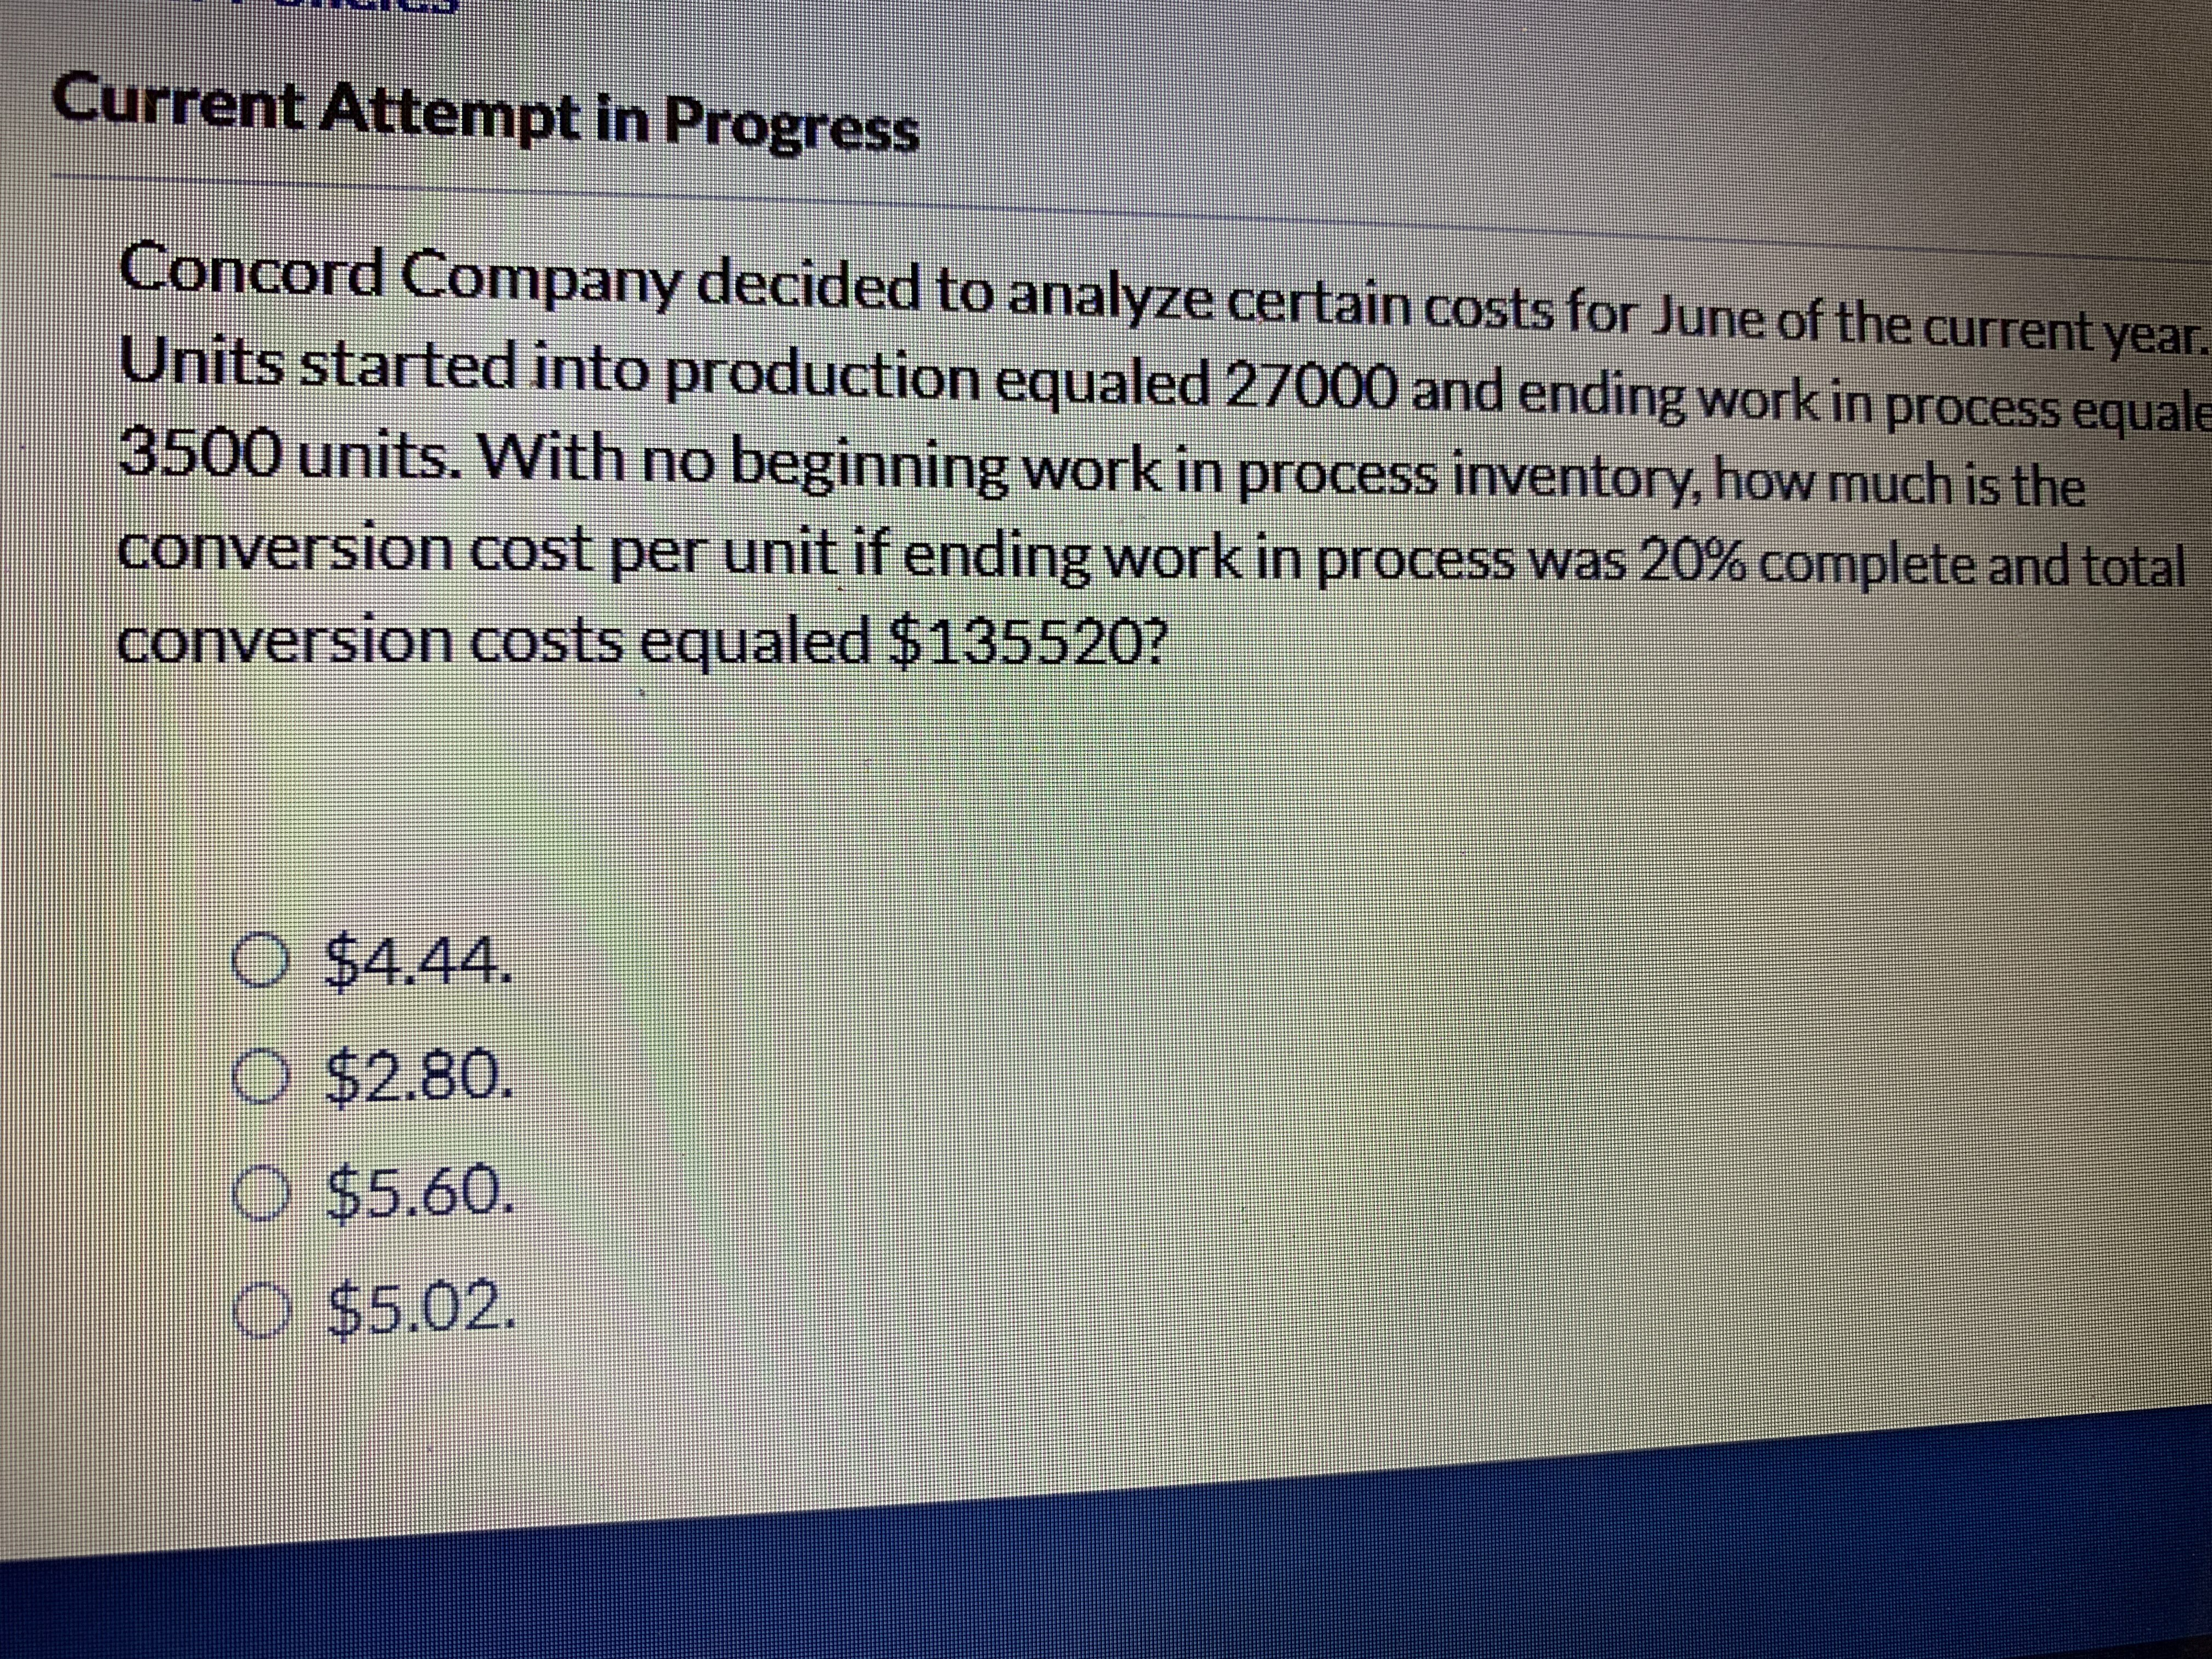 Current Attempt in Progress Concord Company decided to analyze certain costs for June of the current year. Units started into production equaled 27000 and ending work in process equale 3500 units. With no beginning work in process inventory, how much is the conversion cost per unit if ending work in process was 20 % complete and total conversion costs equaled $135520? O $4.44. O $2.80. $5.60. e $5.02.